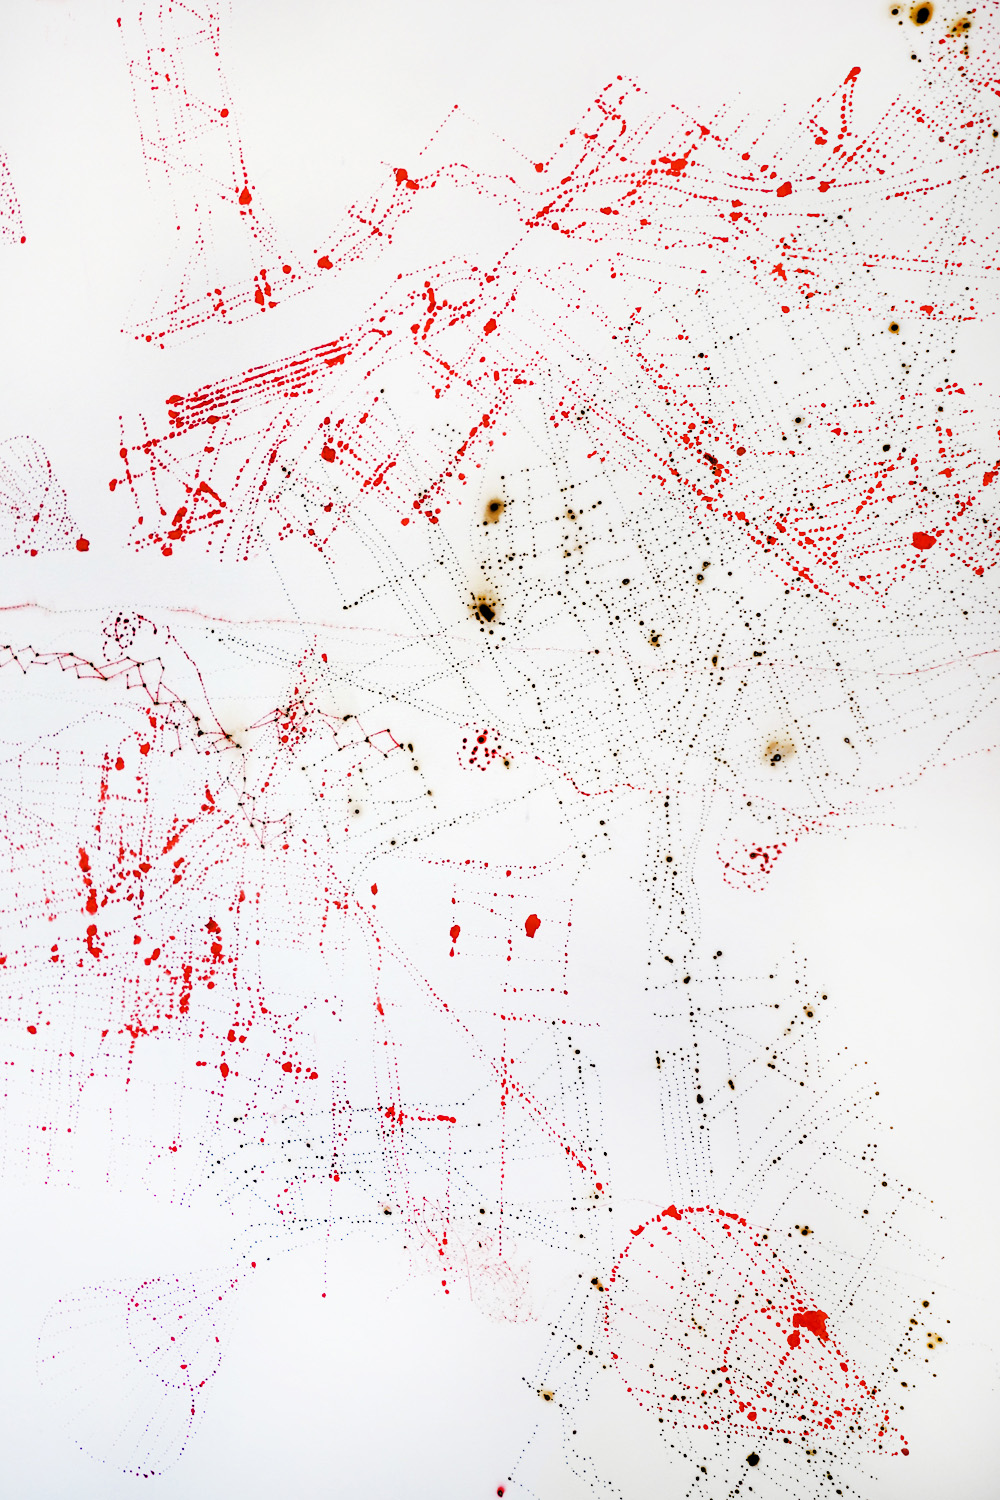 Vermilion Large Drawing, 2014, detail.